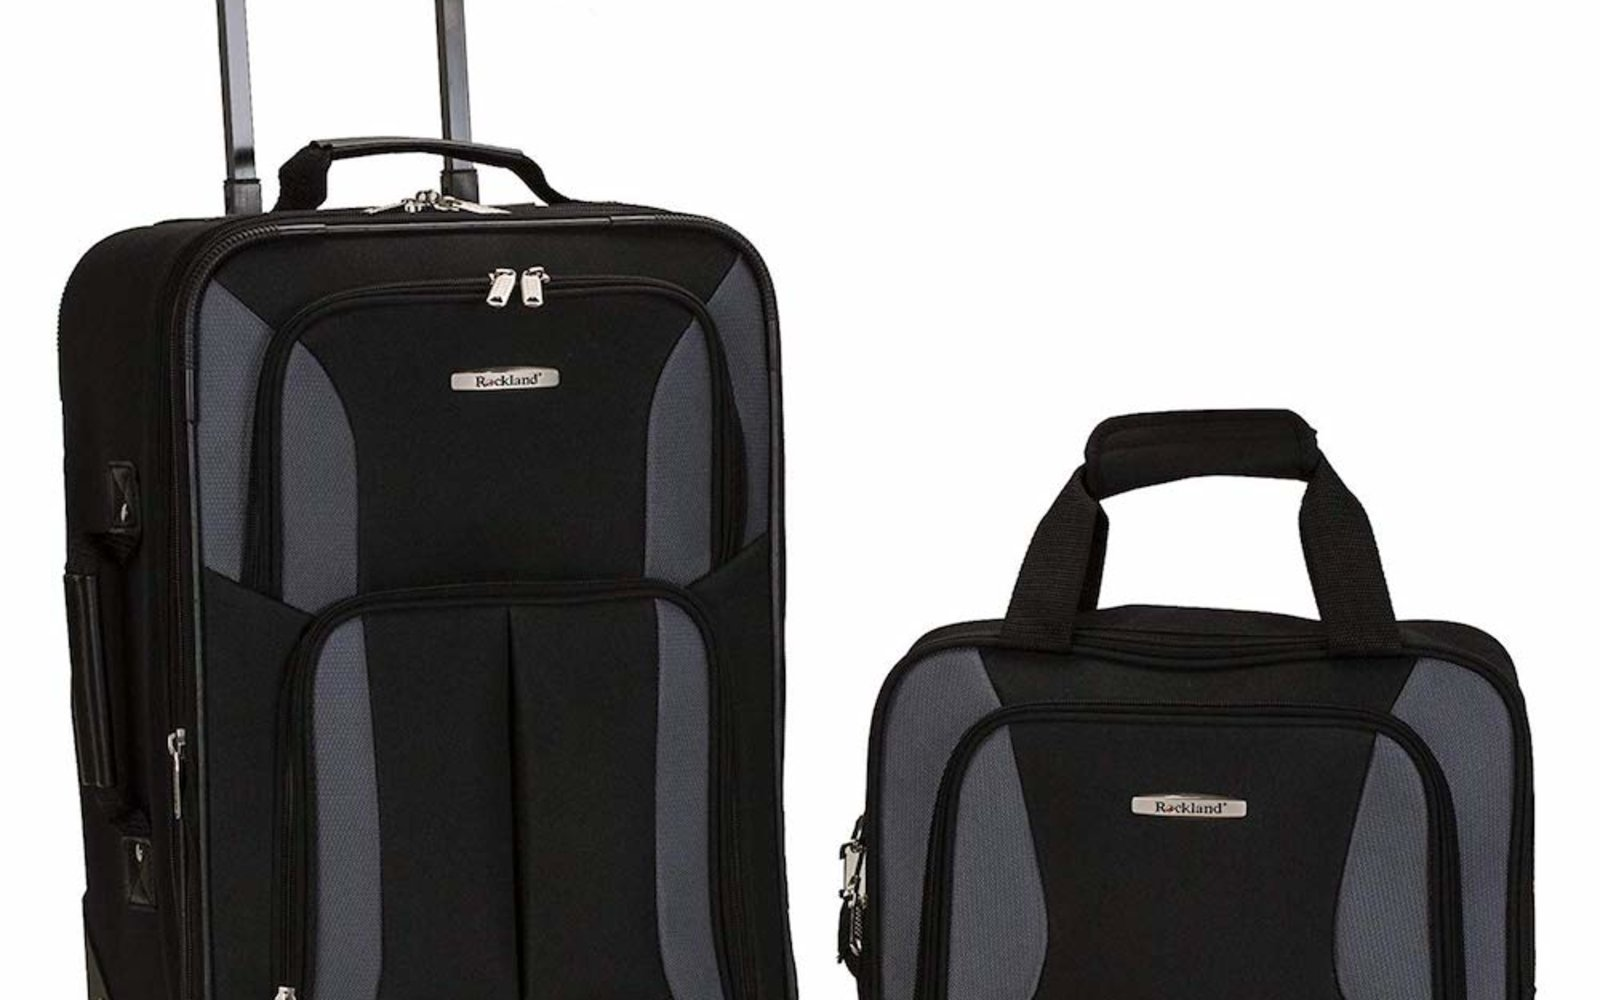 Now's Your Last Chance to Get a Two-piece Luggage Set for Only $28